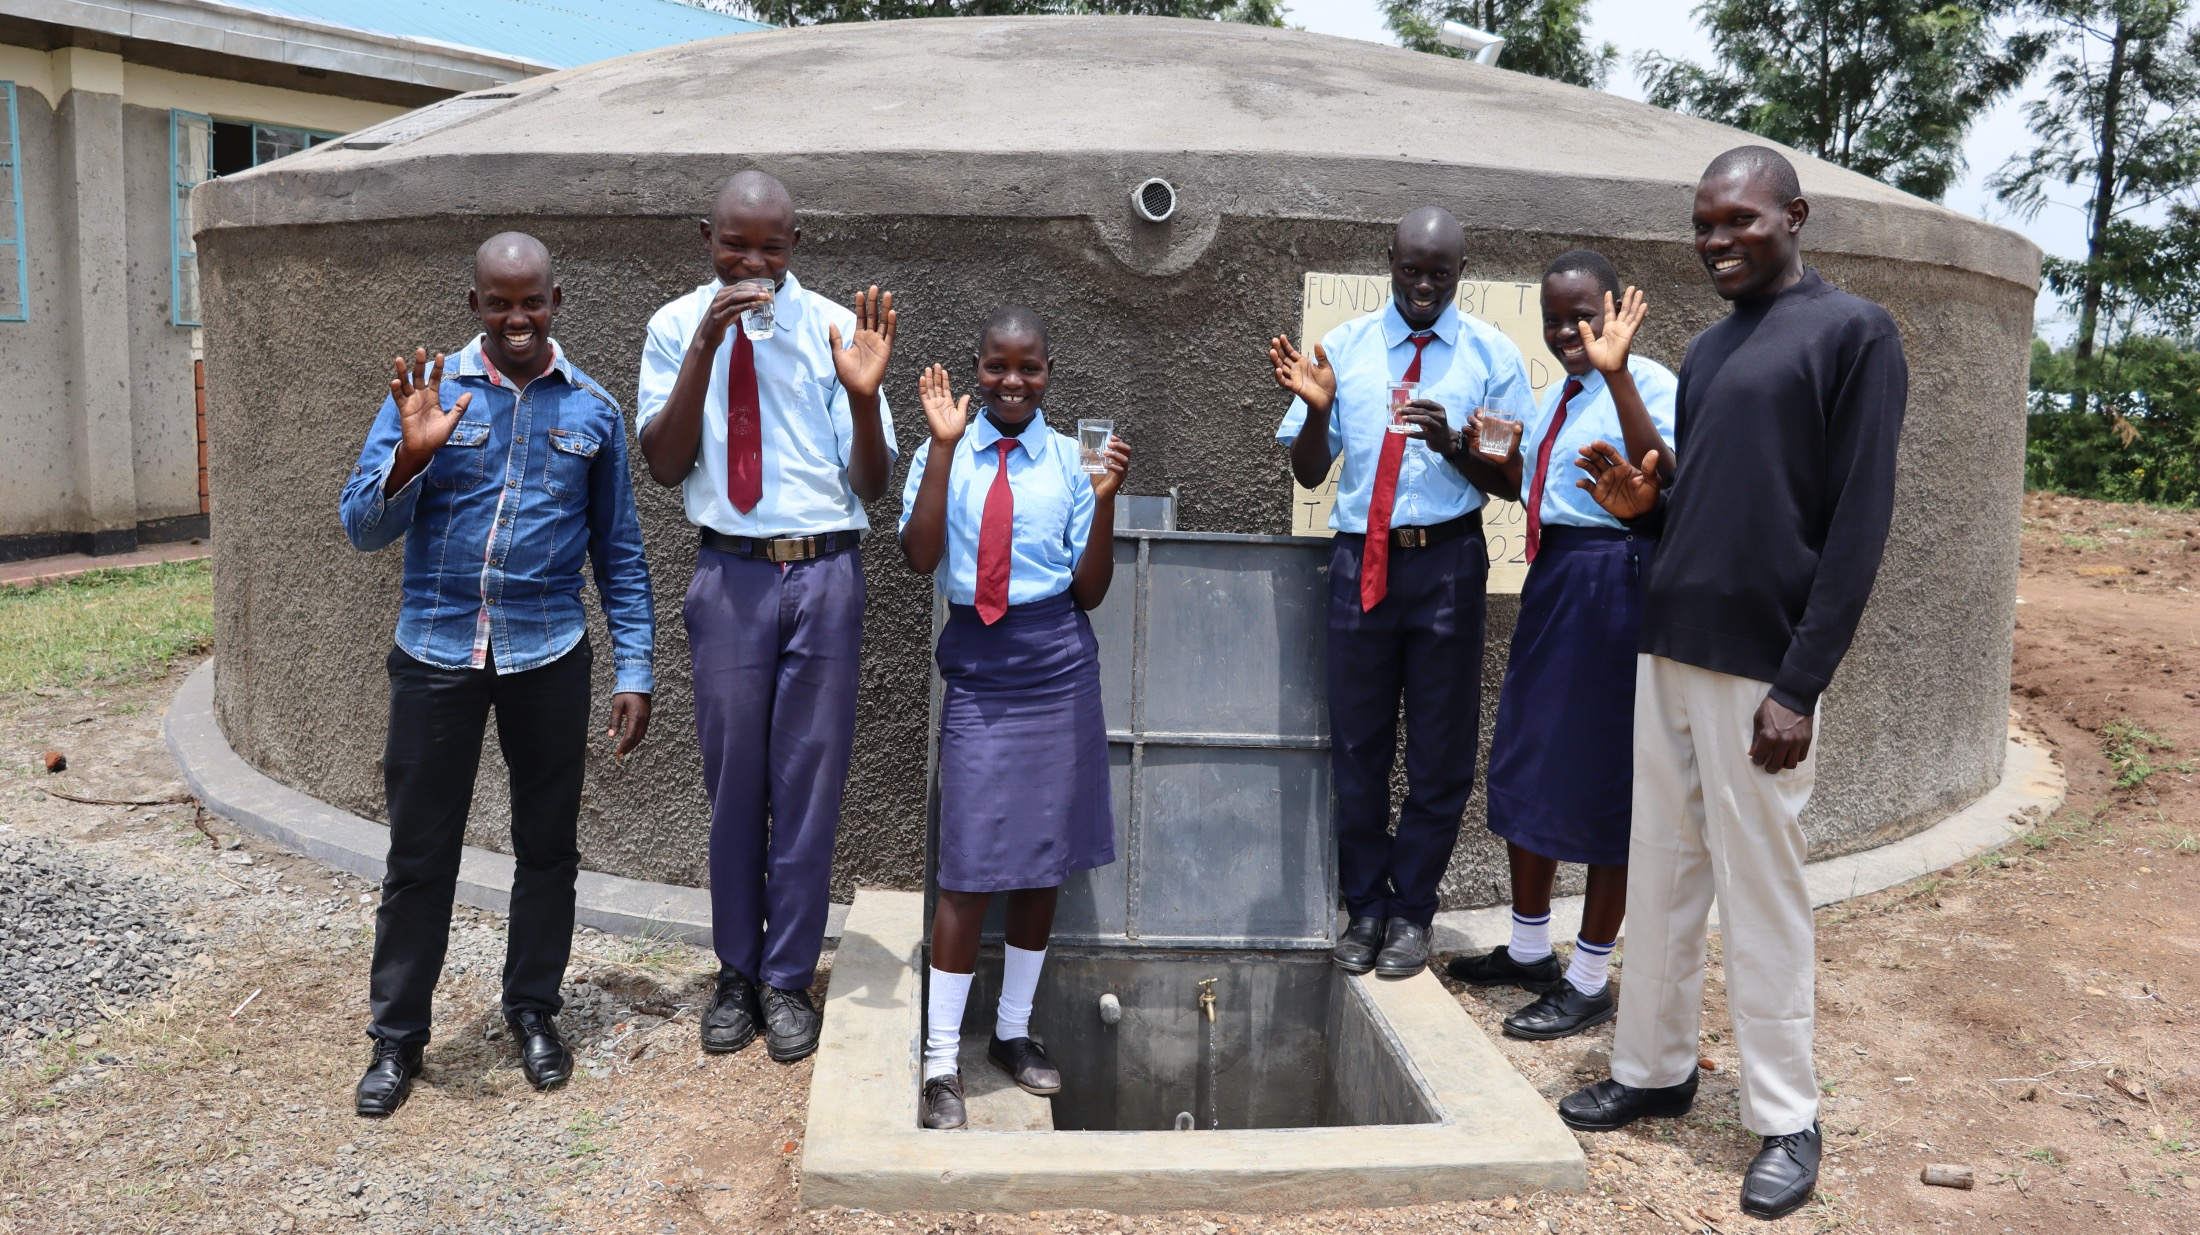 The Water Project : 45-kenya20109-trainer-jonathan-students-and-staff-at-the-water-tank-1